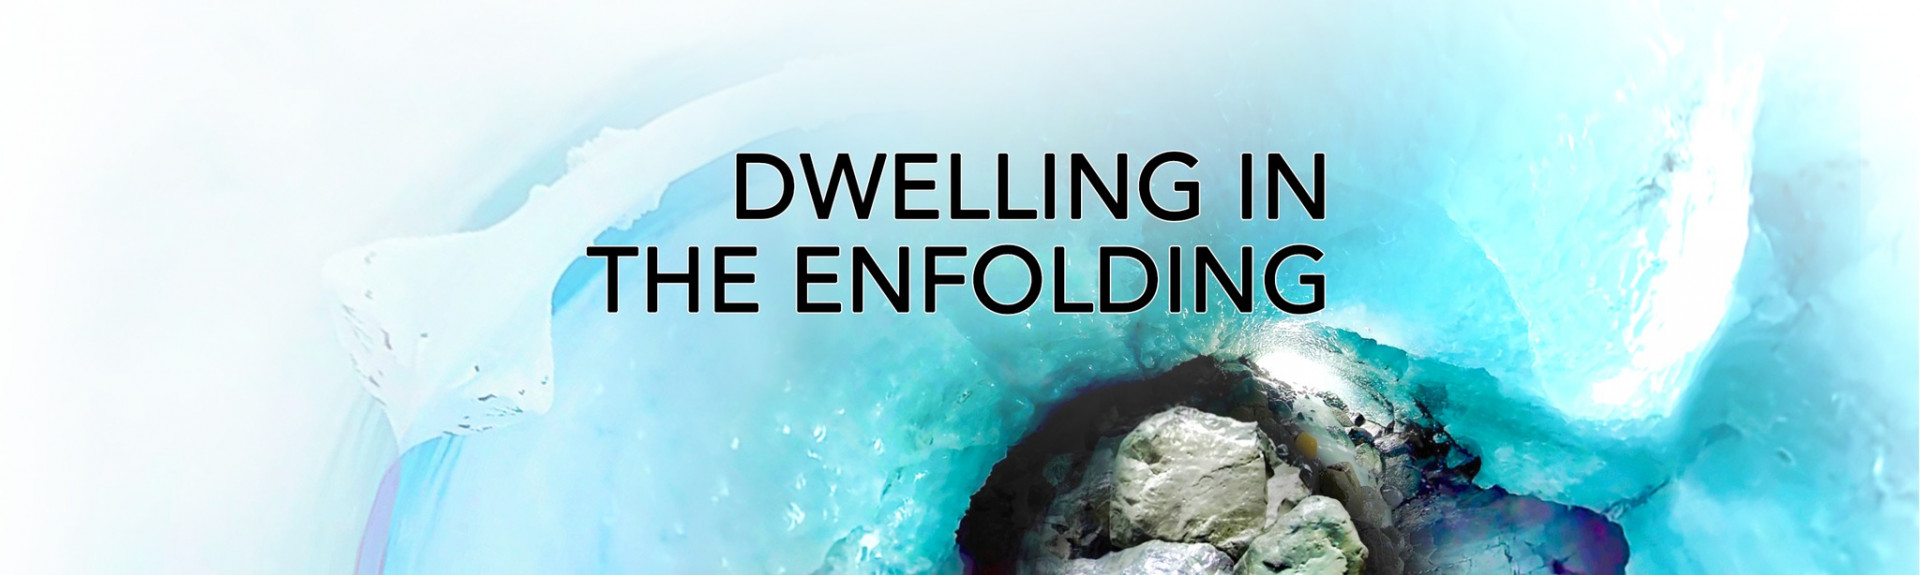 Dwelling in the Enfolding